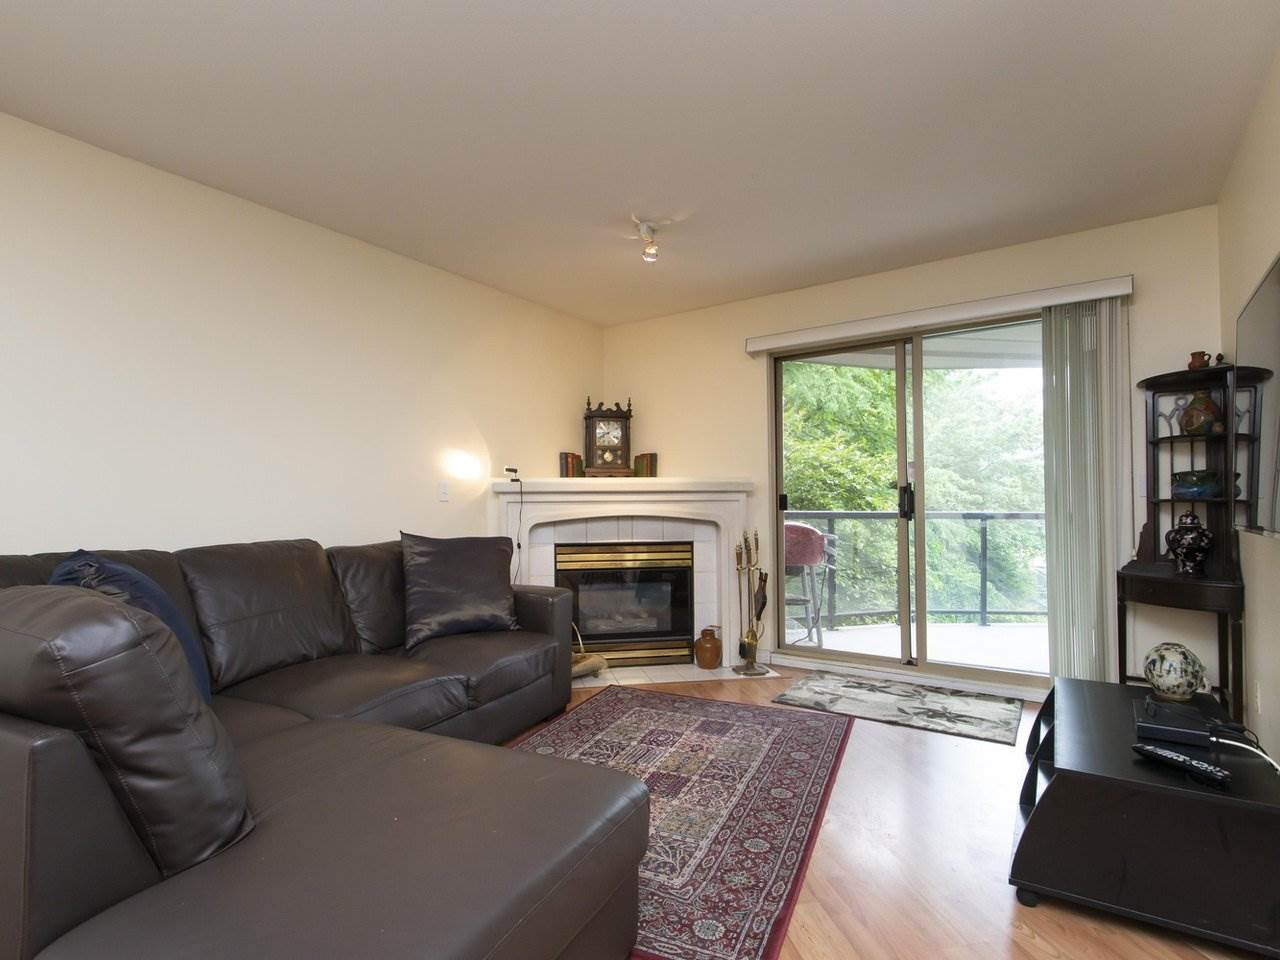 301 2615 JANE STREET - Central Pt Coquitlam Apartment/Condo for sale, 1 Bedroom (R2447351) - #4